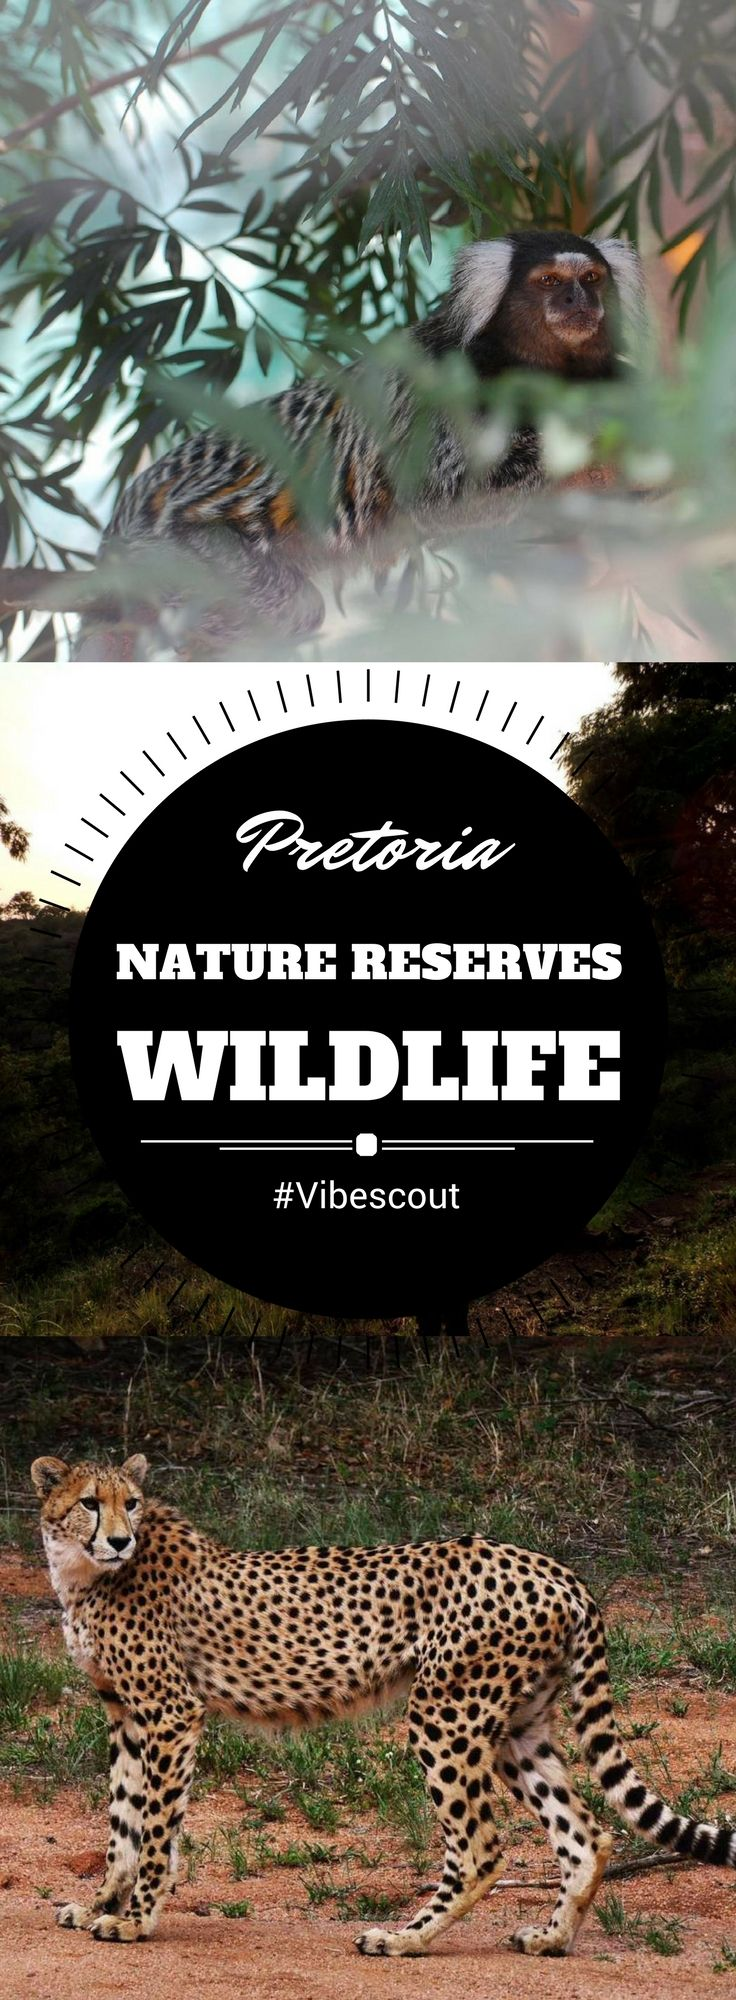 Pretoria offers plenty of opportunities and places to view wildlife in wide open spaces. From hedgehogs to cheetahs, birds and reptiles to lions, you can come and see them all.